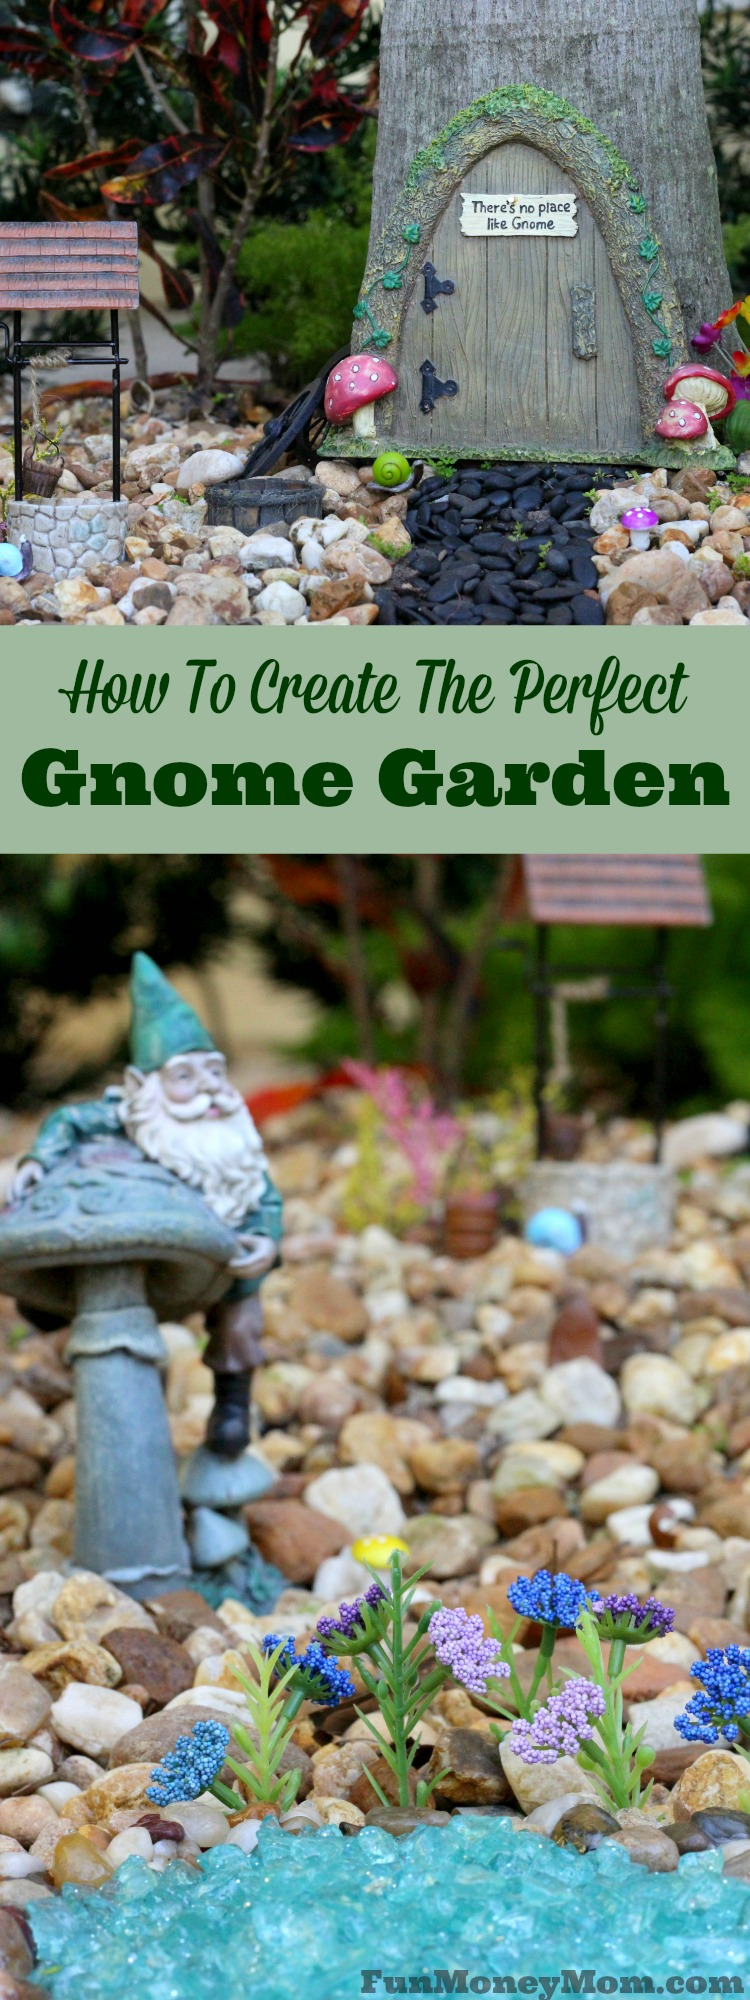 Looking for new ways to spend some outdoor time with the kids? Why not have fun creating your own gnome garden together. #FreeOfSulfates #ad